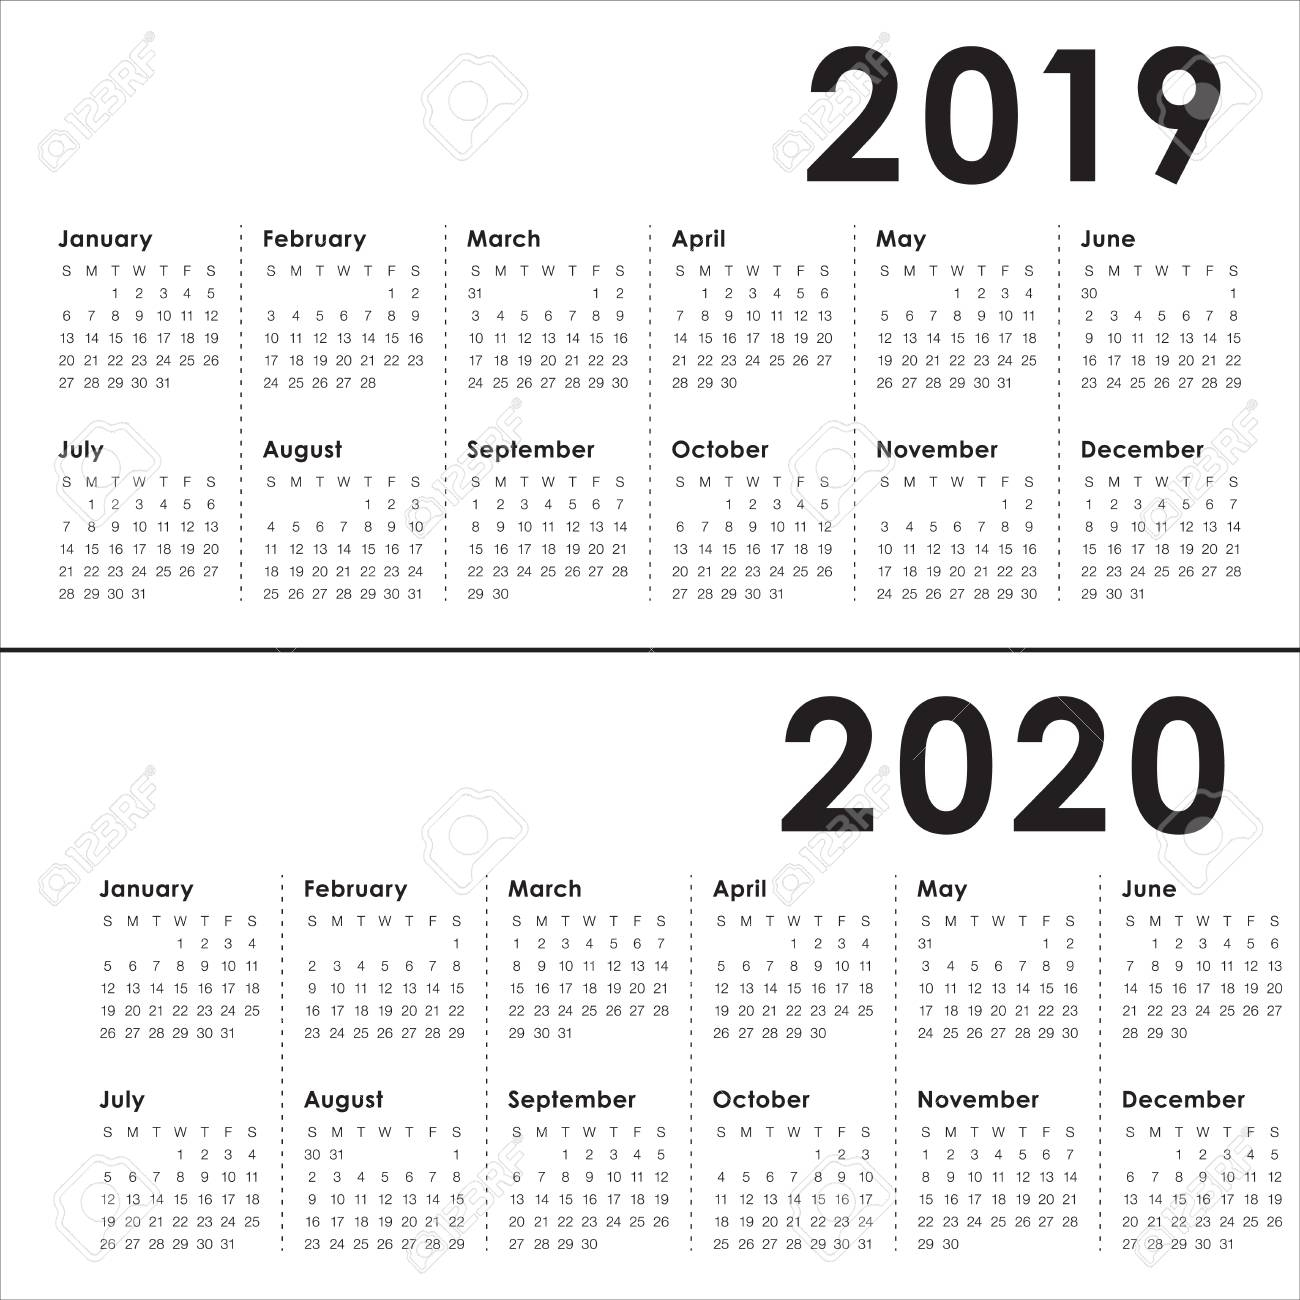 Year 2019 2020 Calendar Vector Design Template, Simple And Clean.. within More Calendar Templates: 2019 2020 Web Calendar